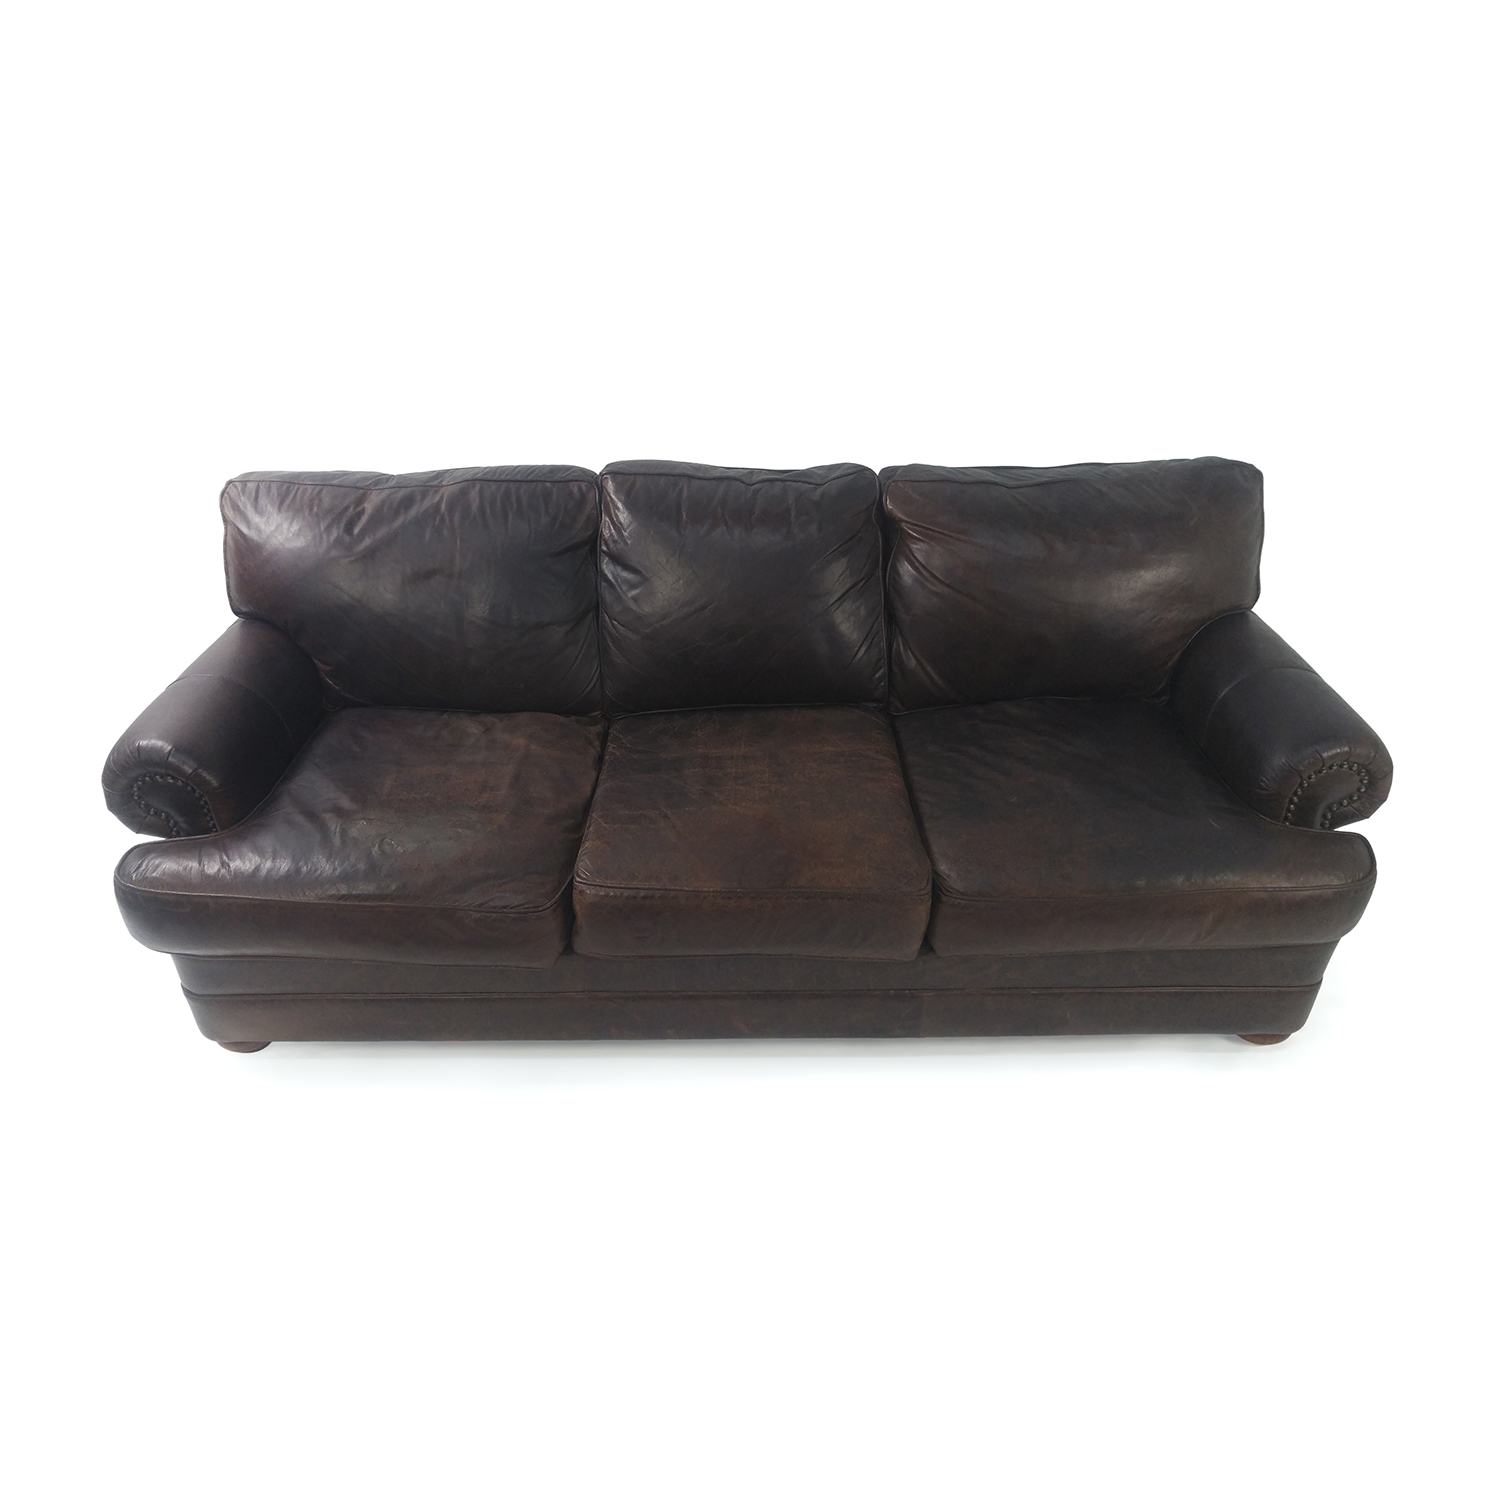 Custom Brown Leather Couch Sofas